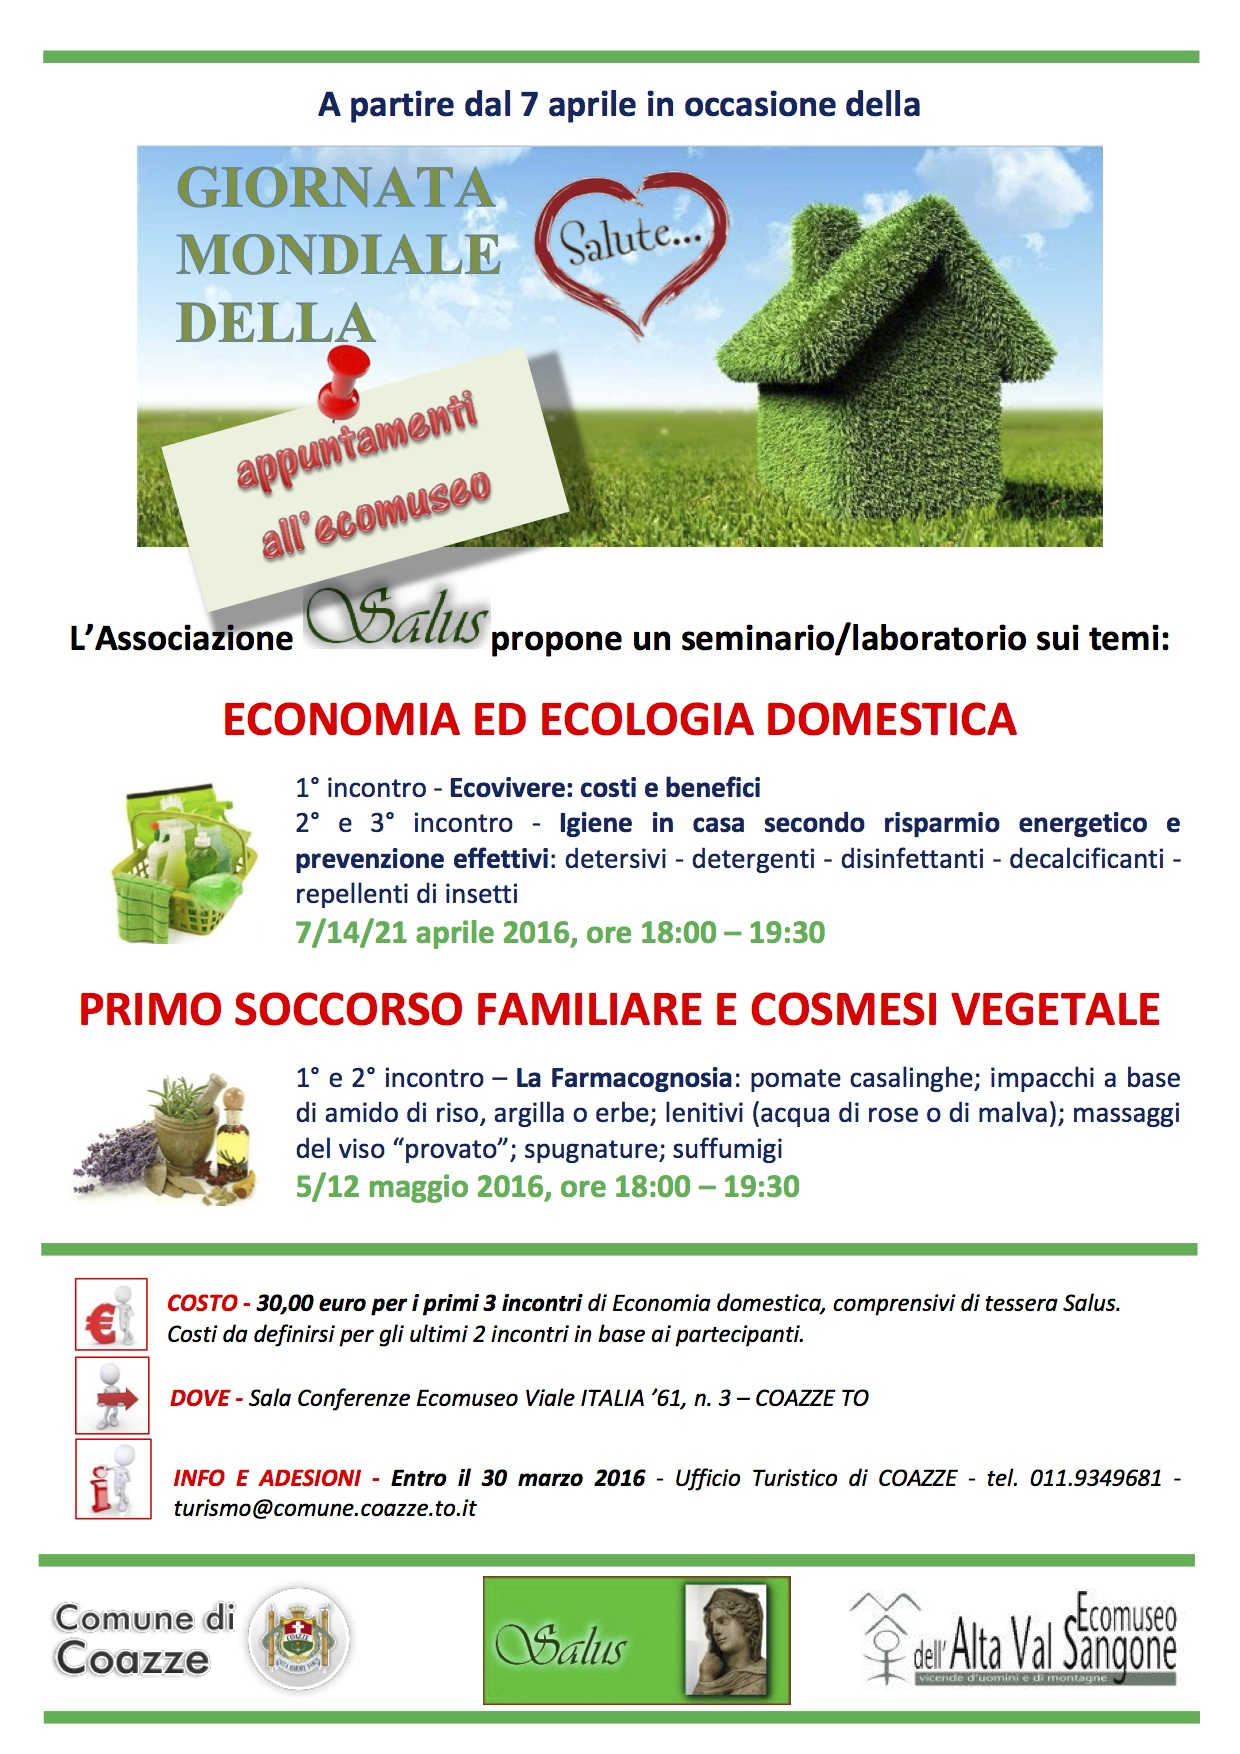 Seminari e laboratori all'ecomuseo